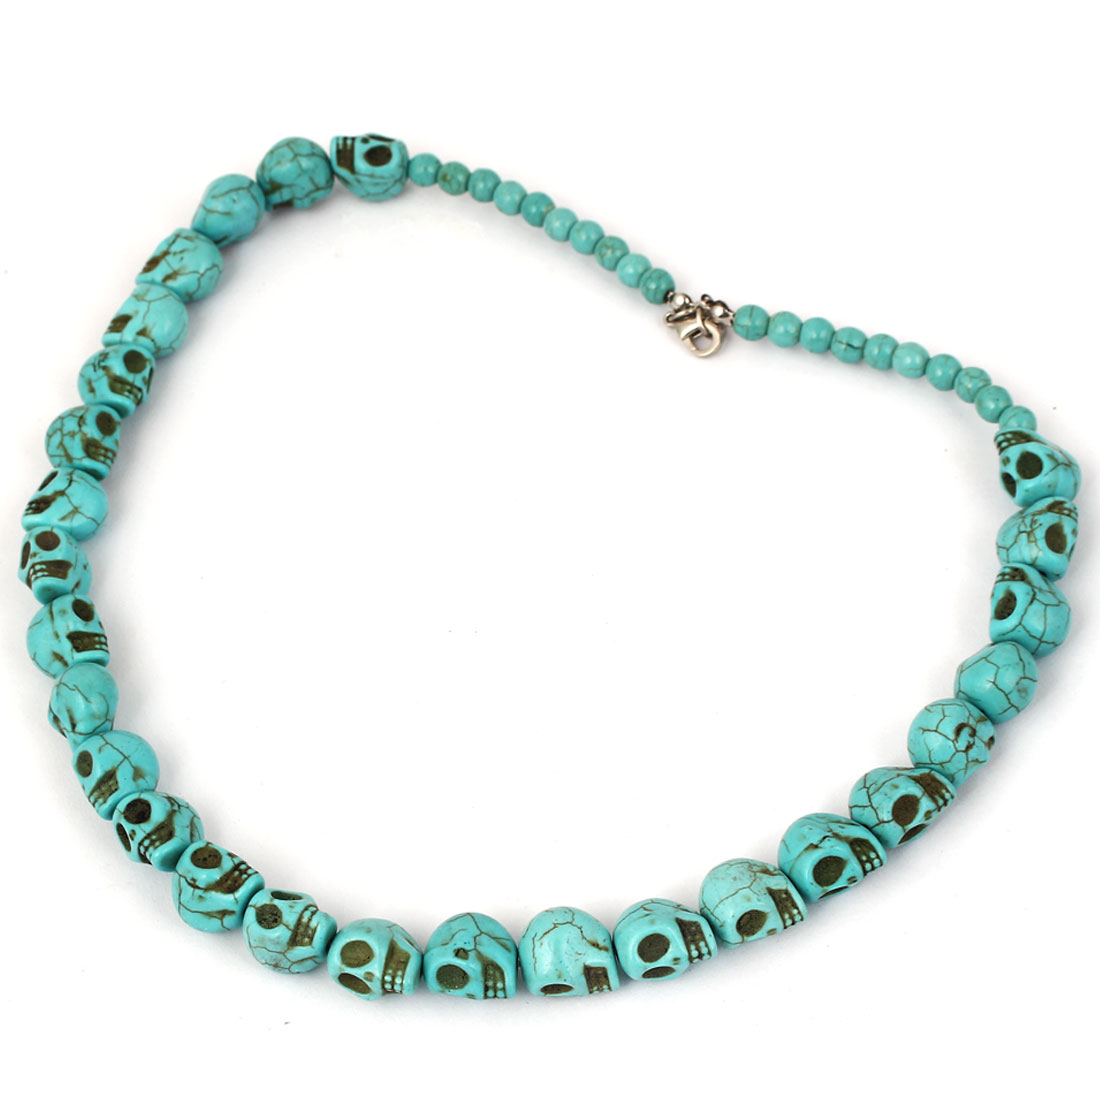 Lady Fashion Jewelry Lobster Clasp Skull Shape Beads Turquoise Necklace Blue